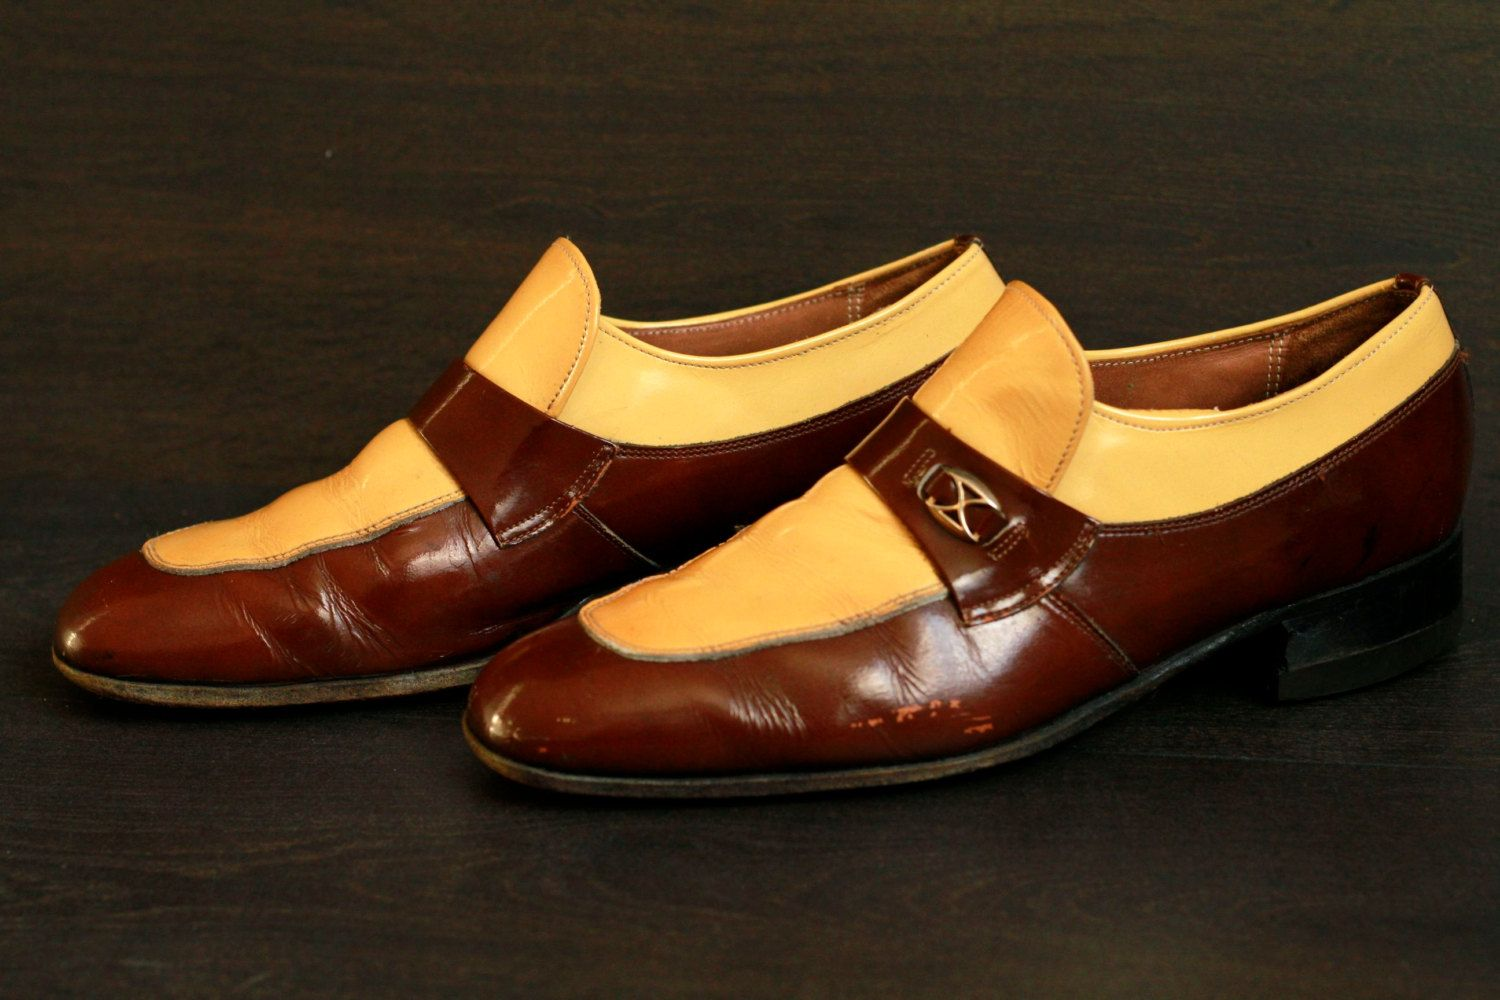 Vintage Mens Loafers 1970s Dress Shoes Yellow Brown Two Tone Mens Size 9 5d Via Etsy Loafers Men Dress Shoes Men Dress Shoes